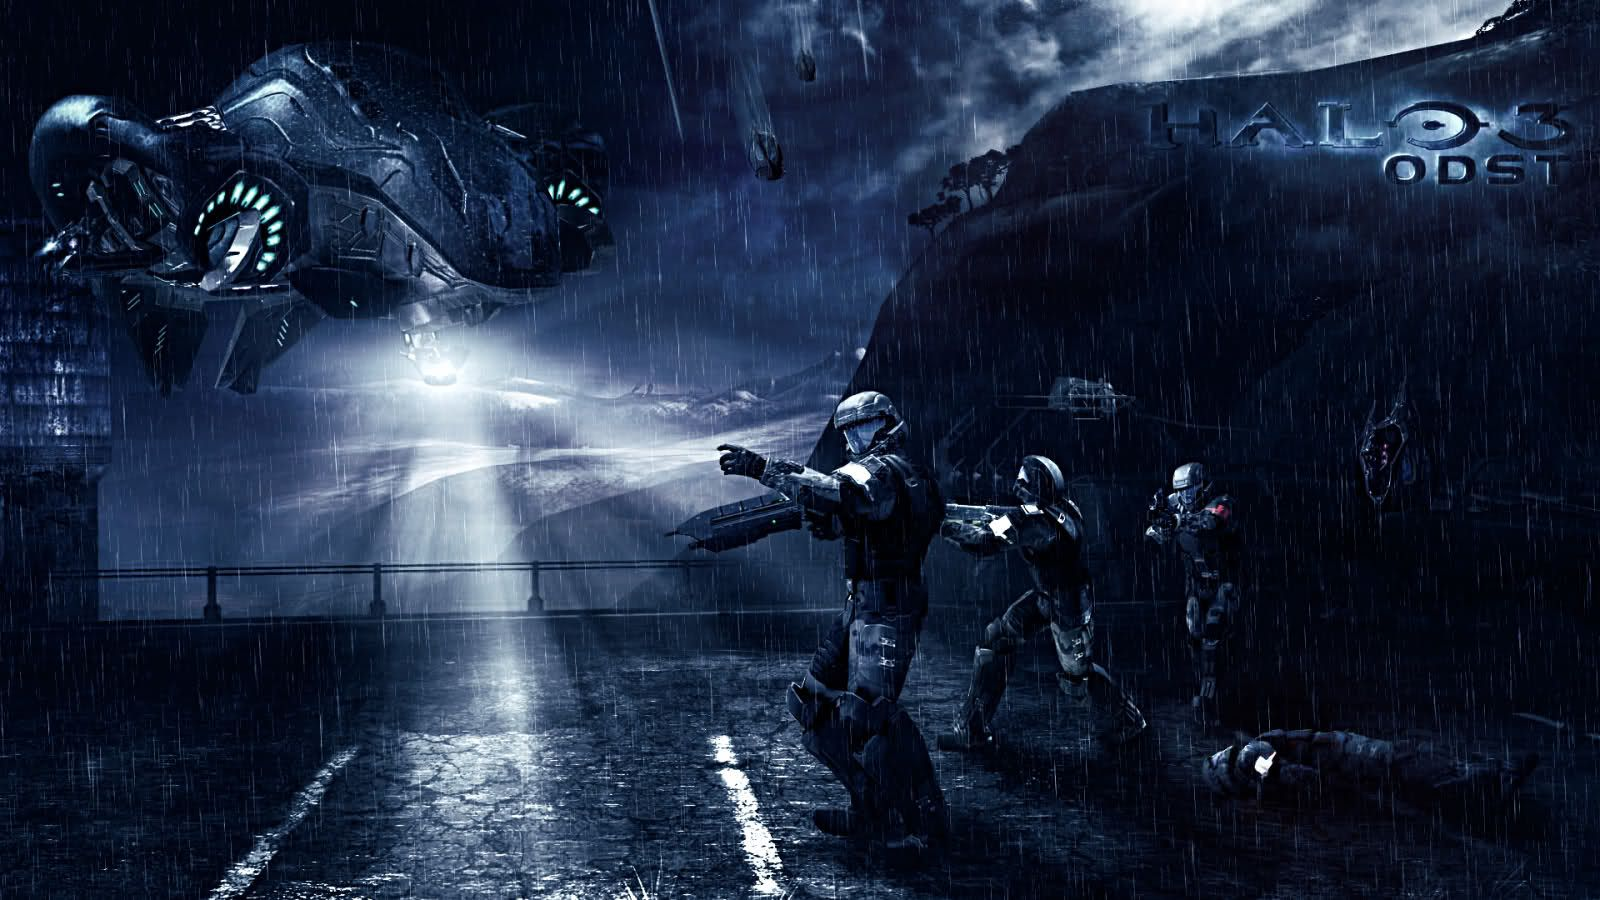 Pin By Cool Wallpapers On Halo Halo Halo 3 Halo 3 Odst